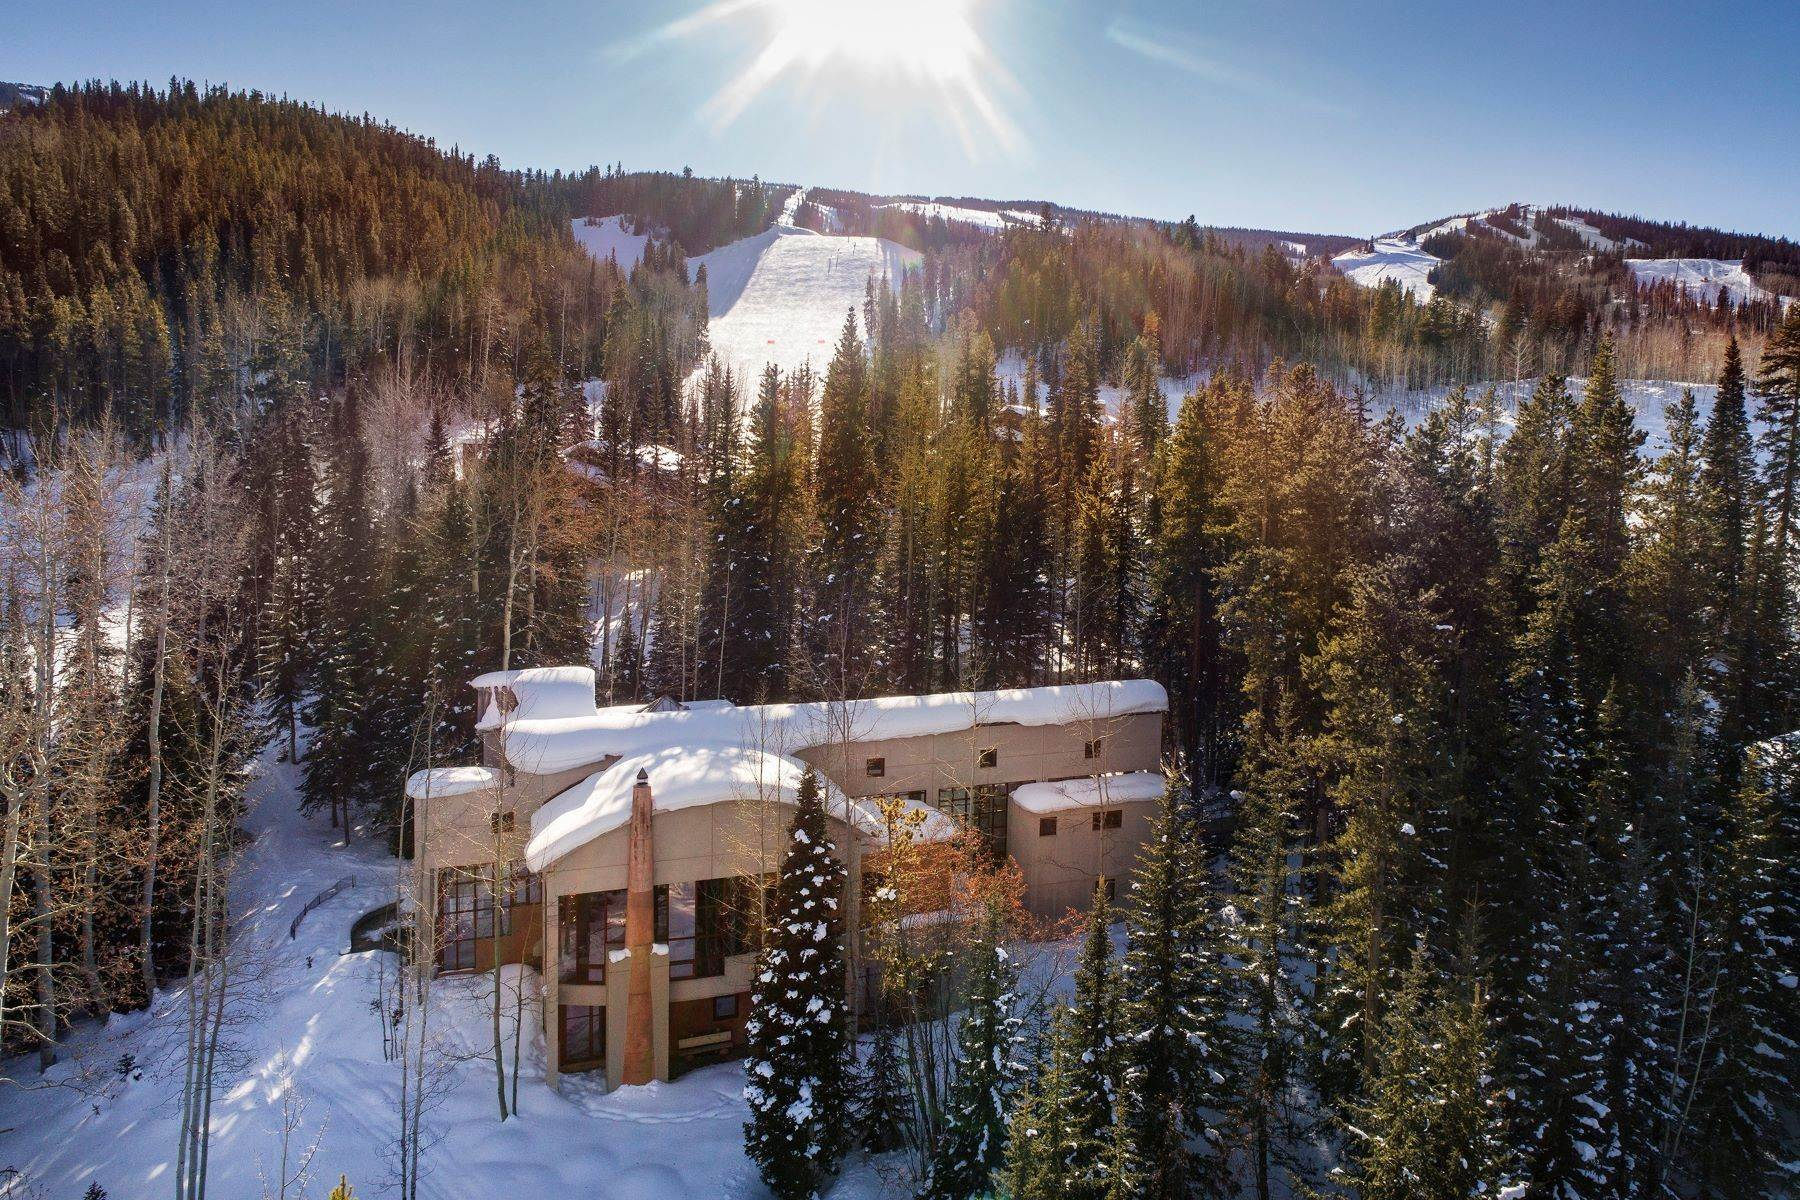 Single Family Homes für Verkauf beim Stunning Mountain Contemporary 84 Pine Lane, Snowmass Village, Colorado, 81615 Vereinigte Staaten